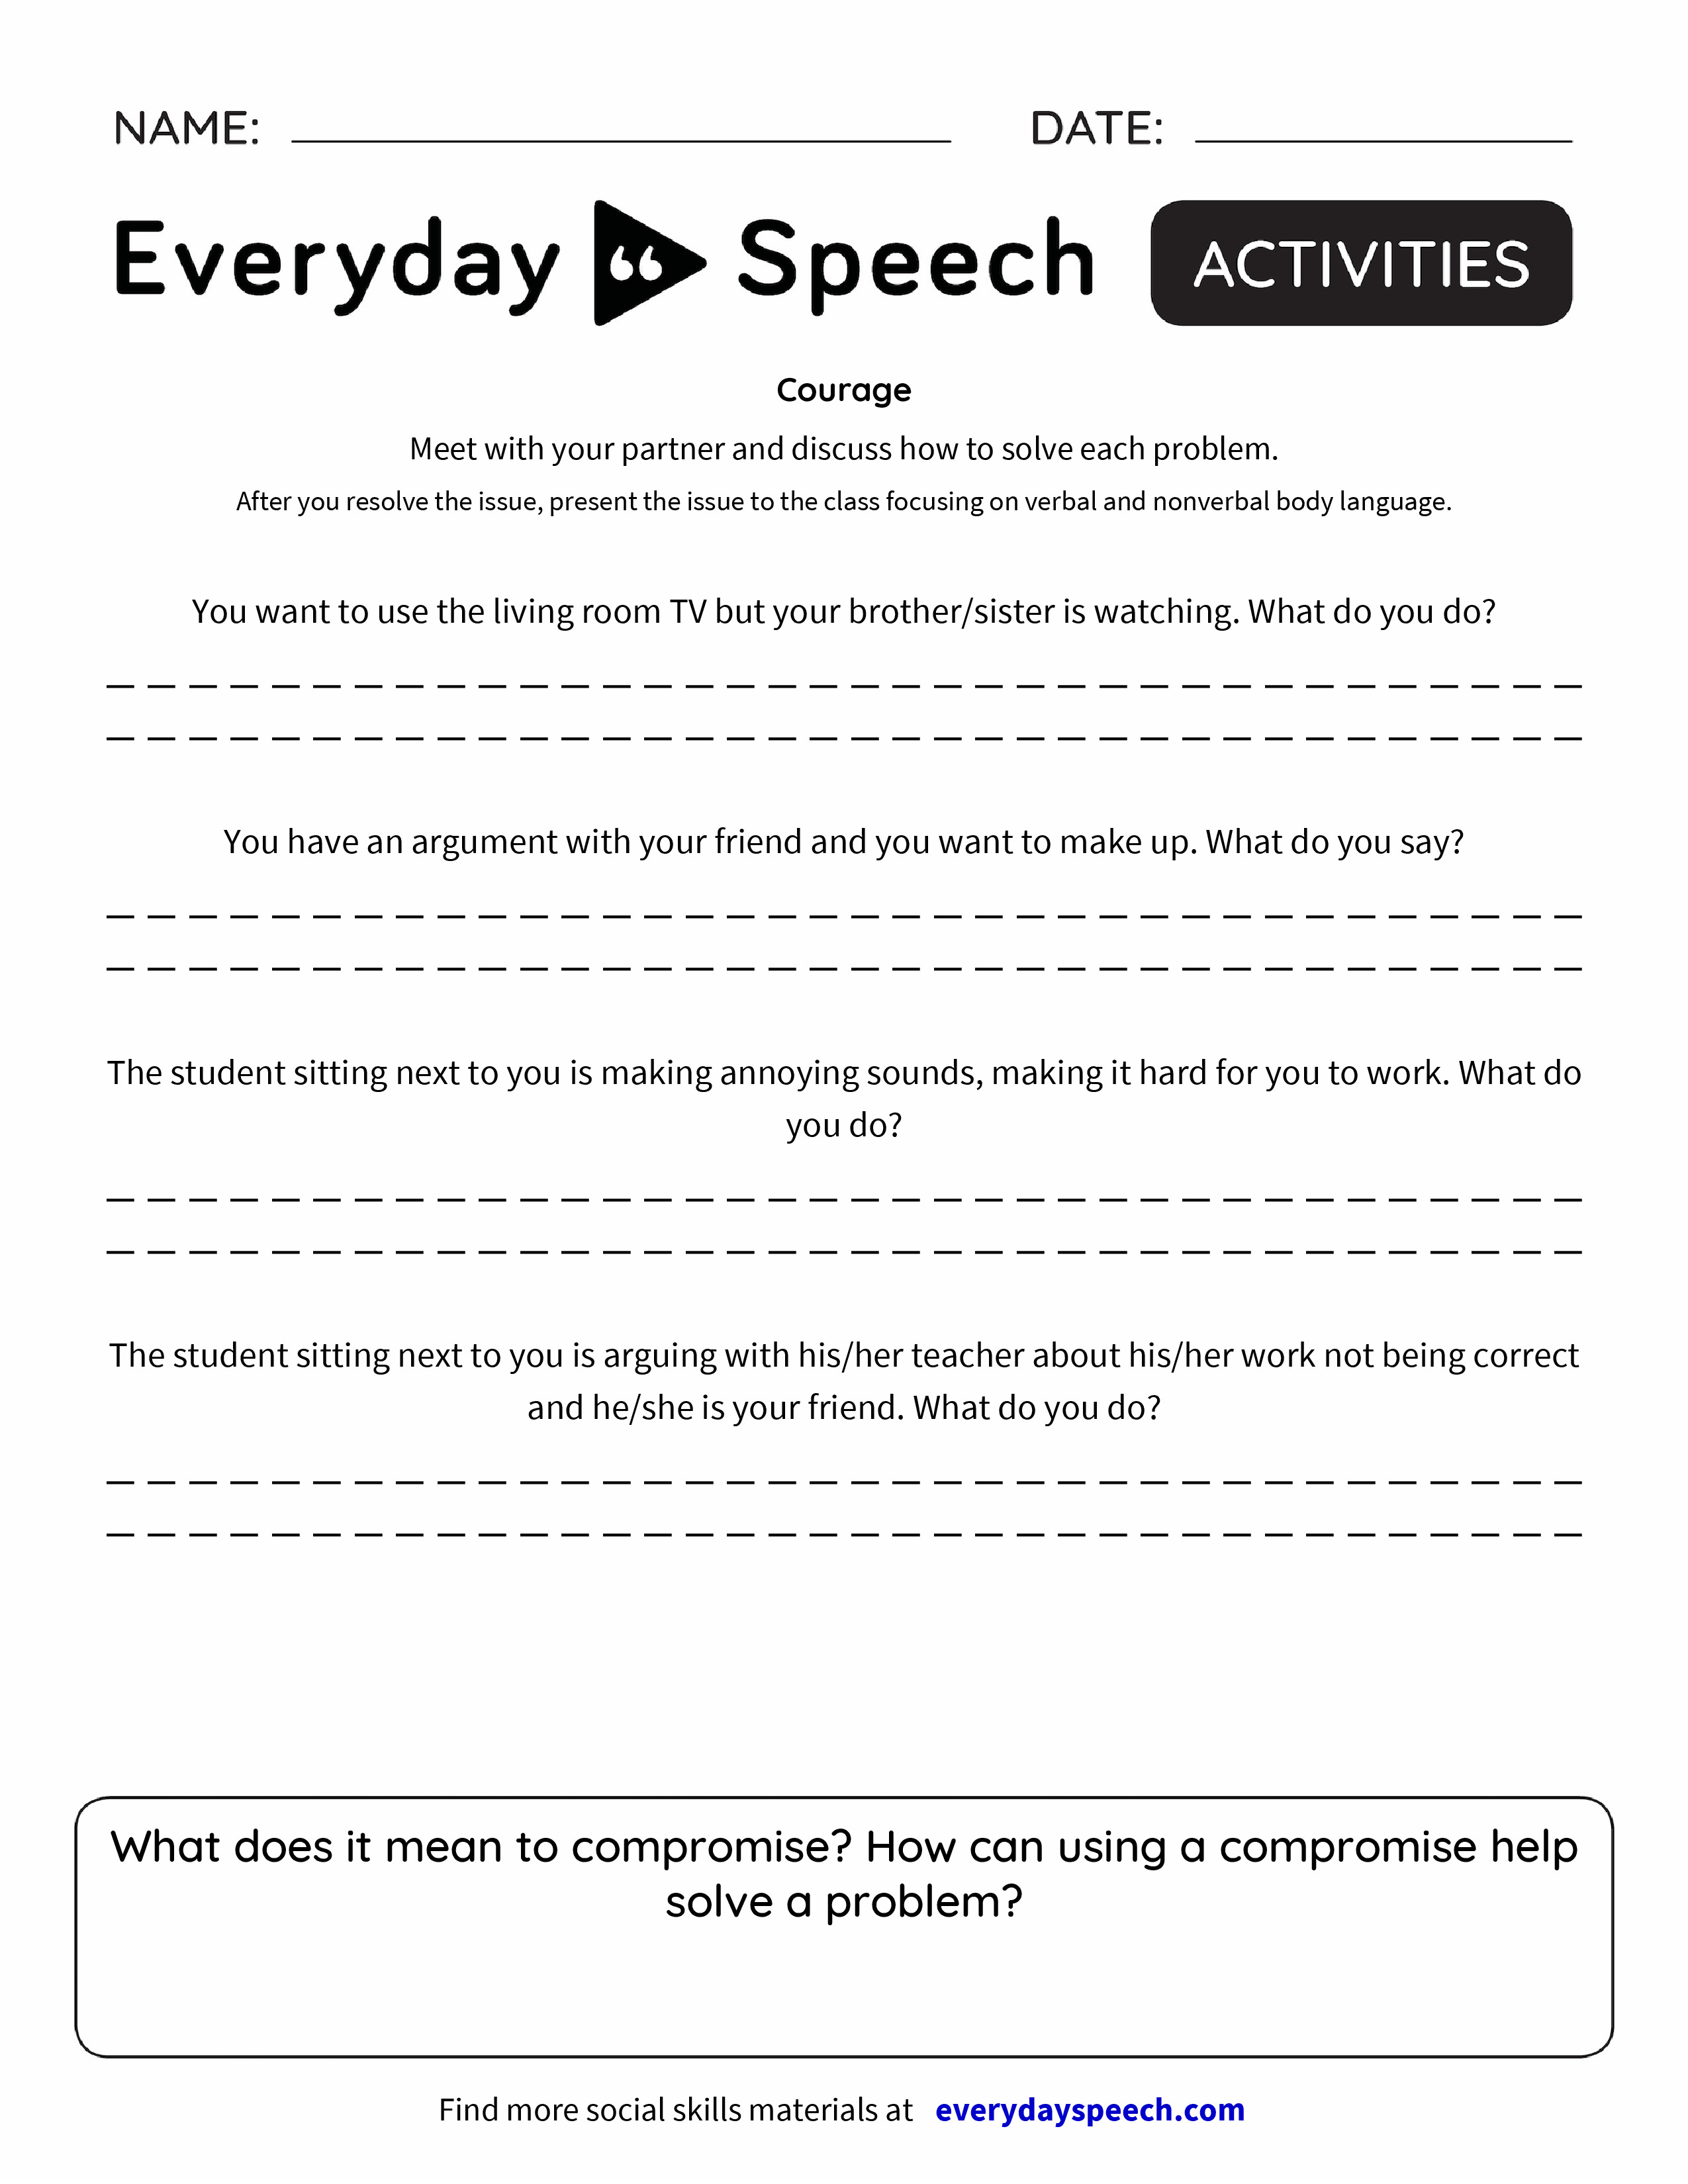 Worksheets Courage Worksheets courage everyday speech preview